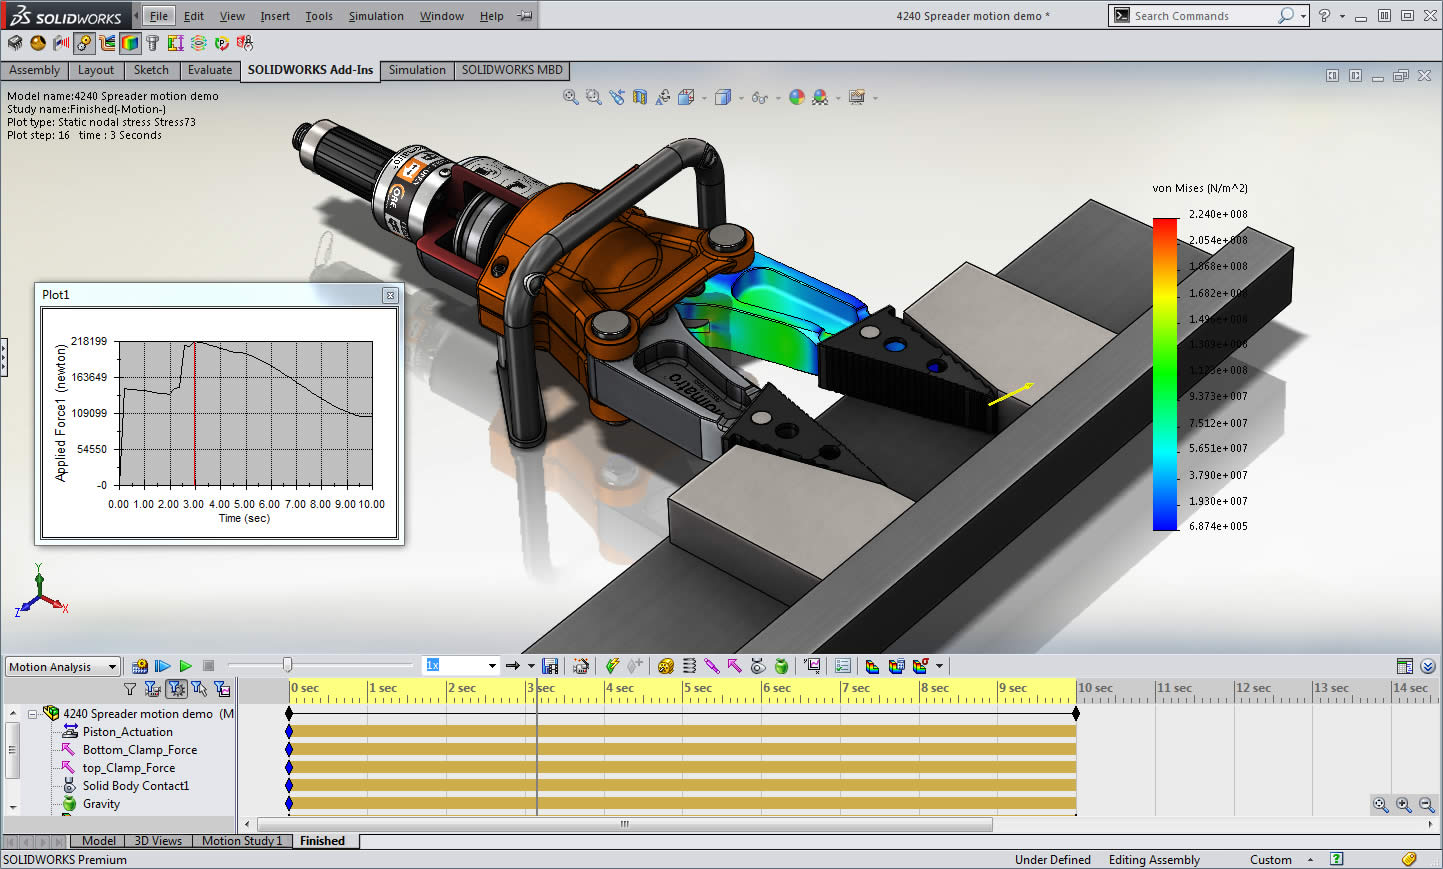 SOLIDWORKS Motion is a physics-based kinematic motion